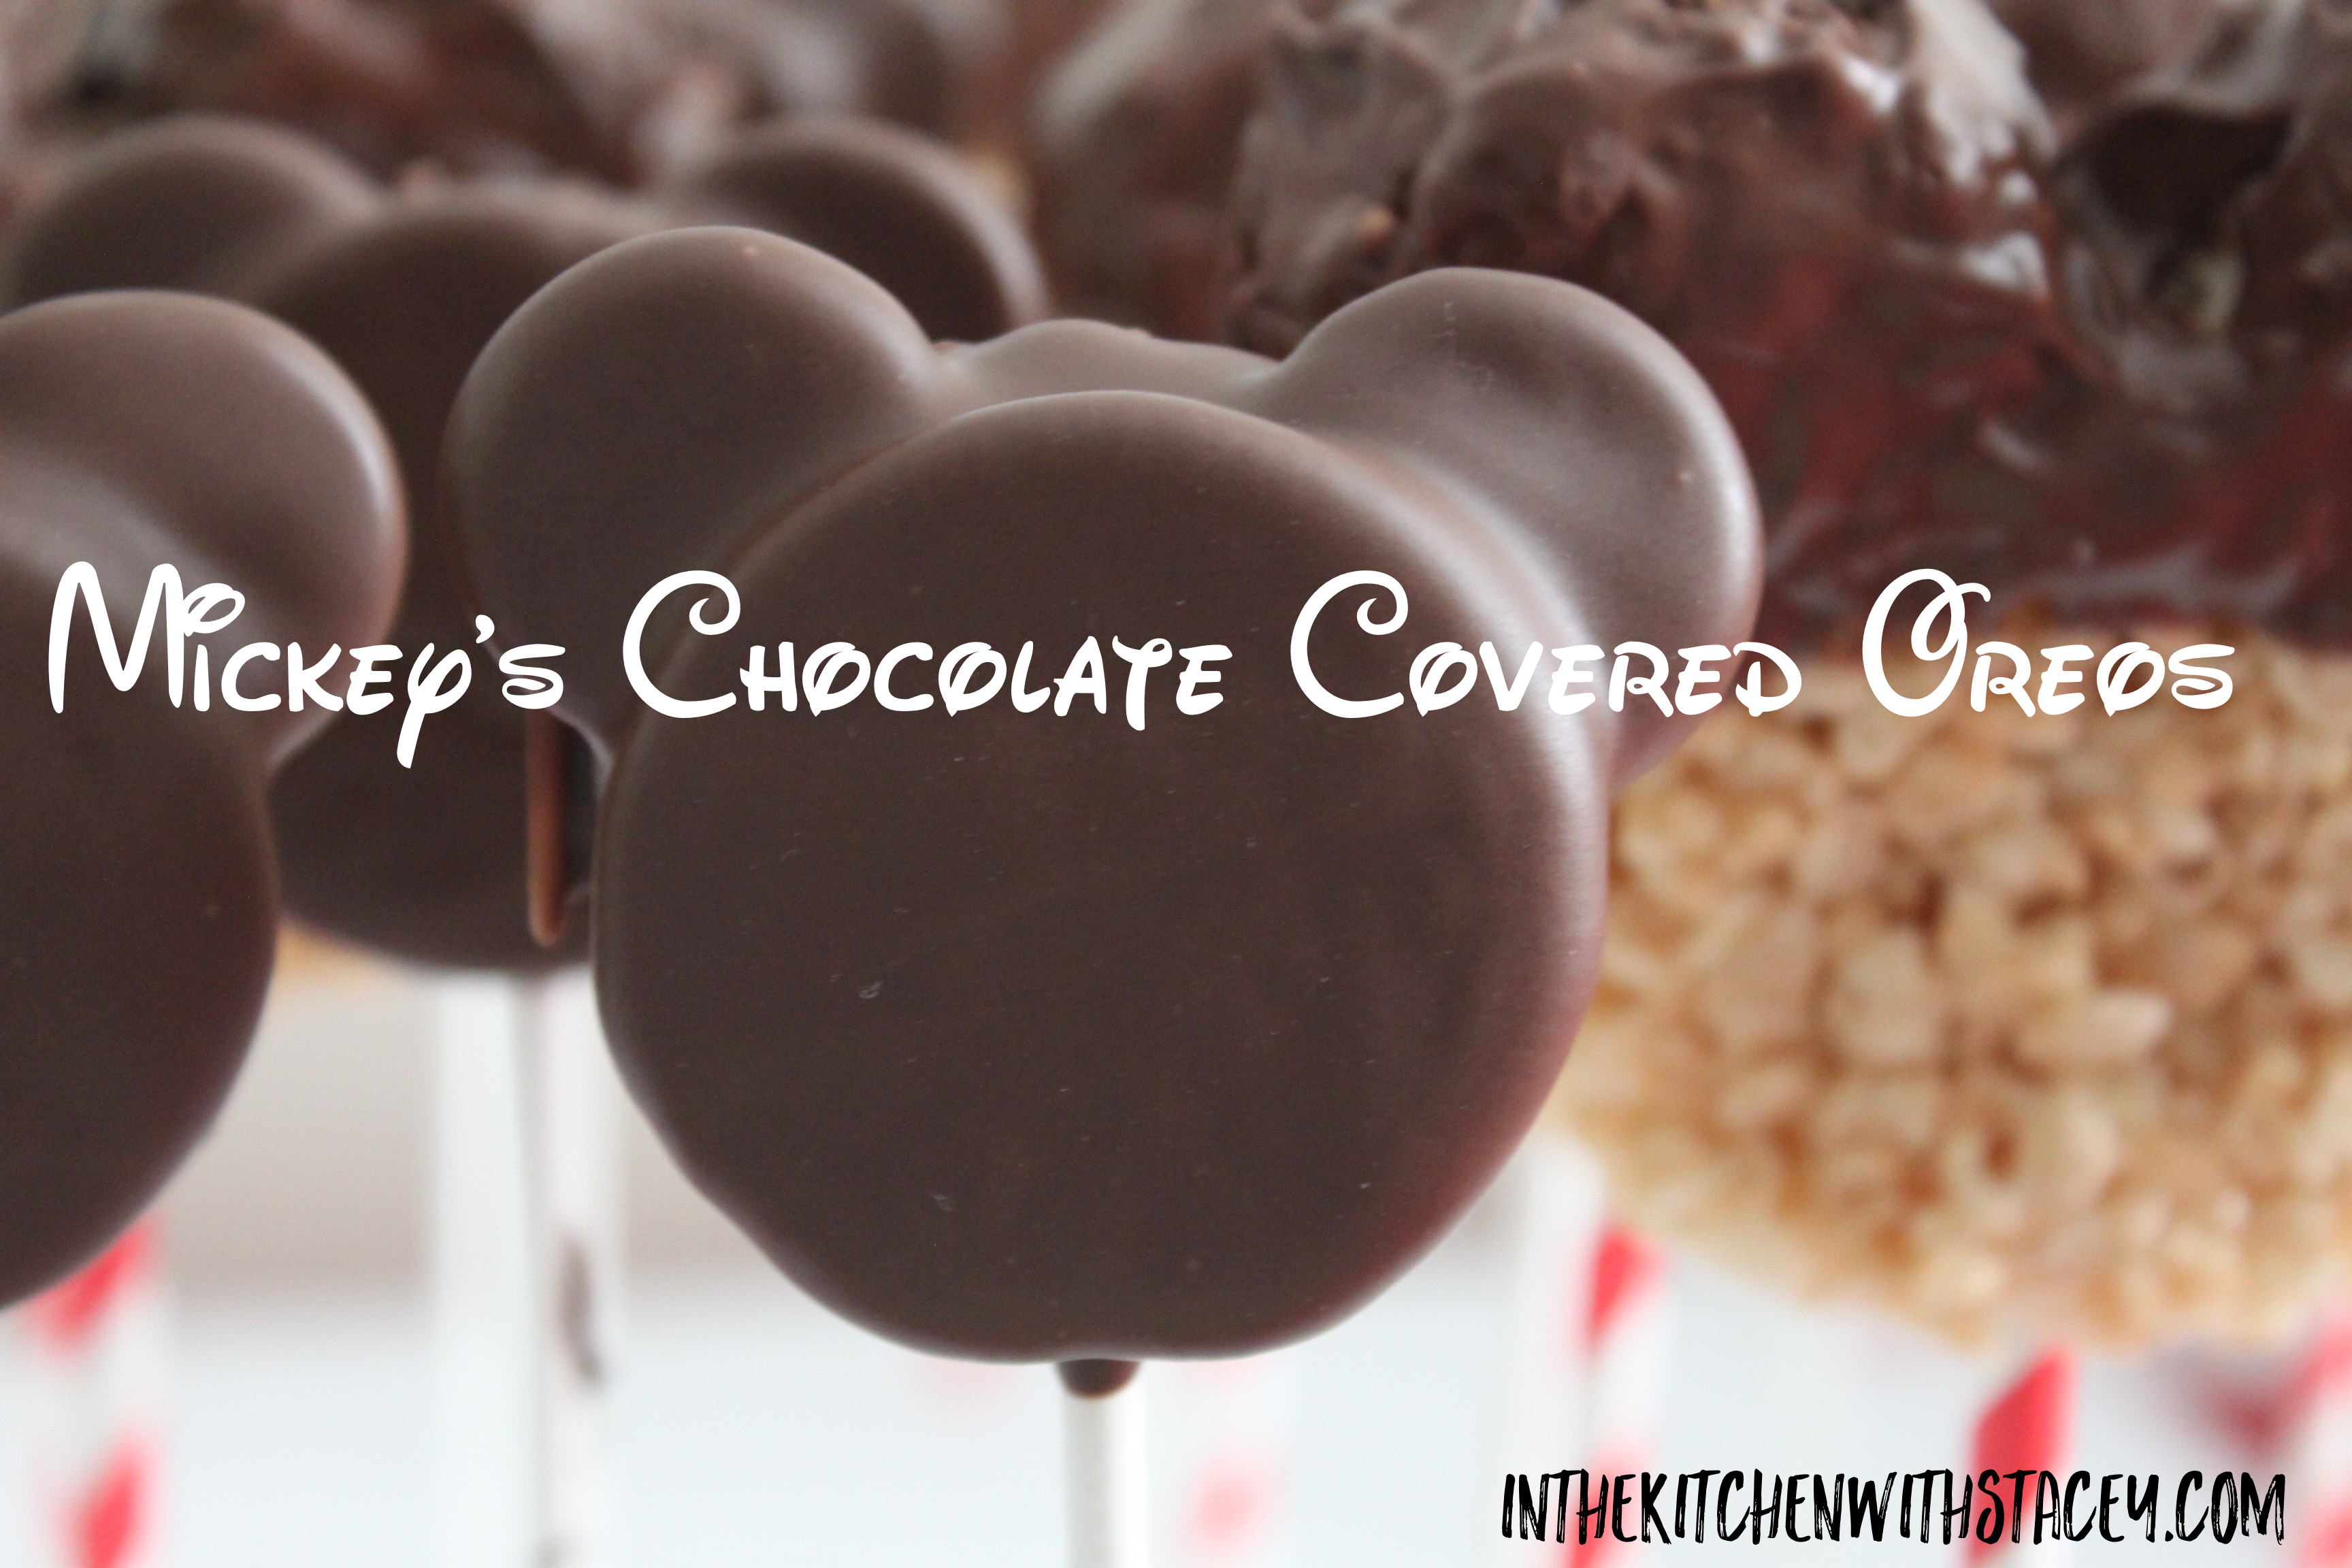 Mickey's Chocolate Covered Oreos